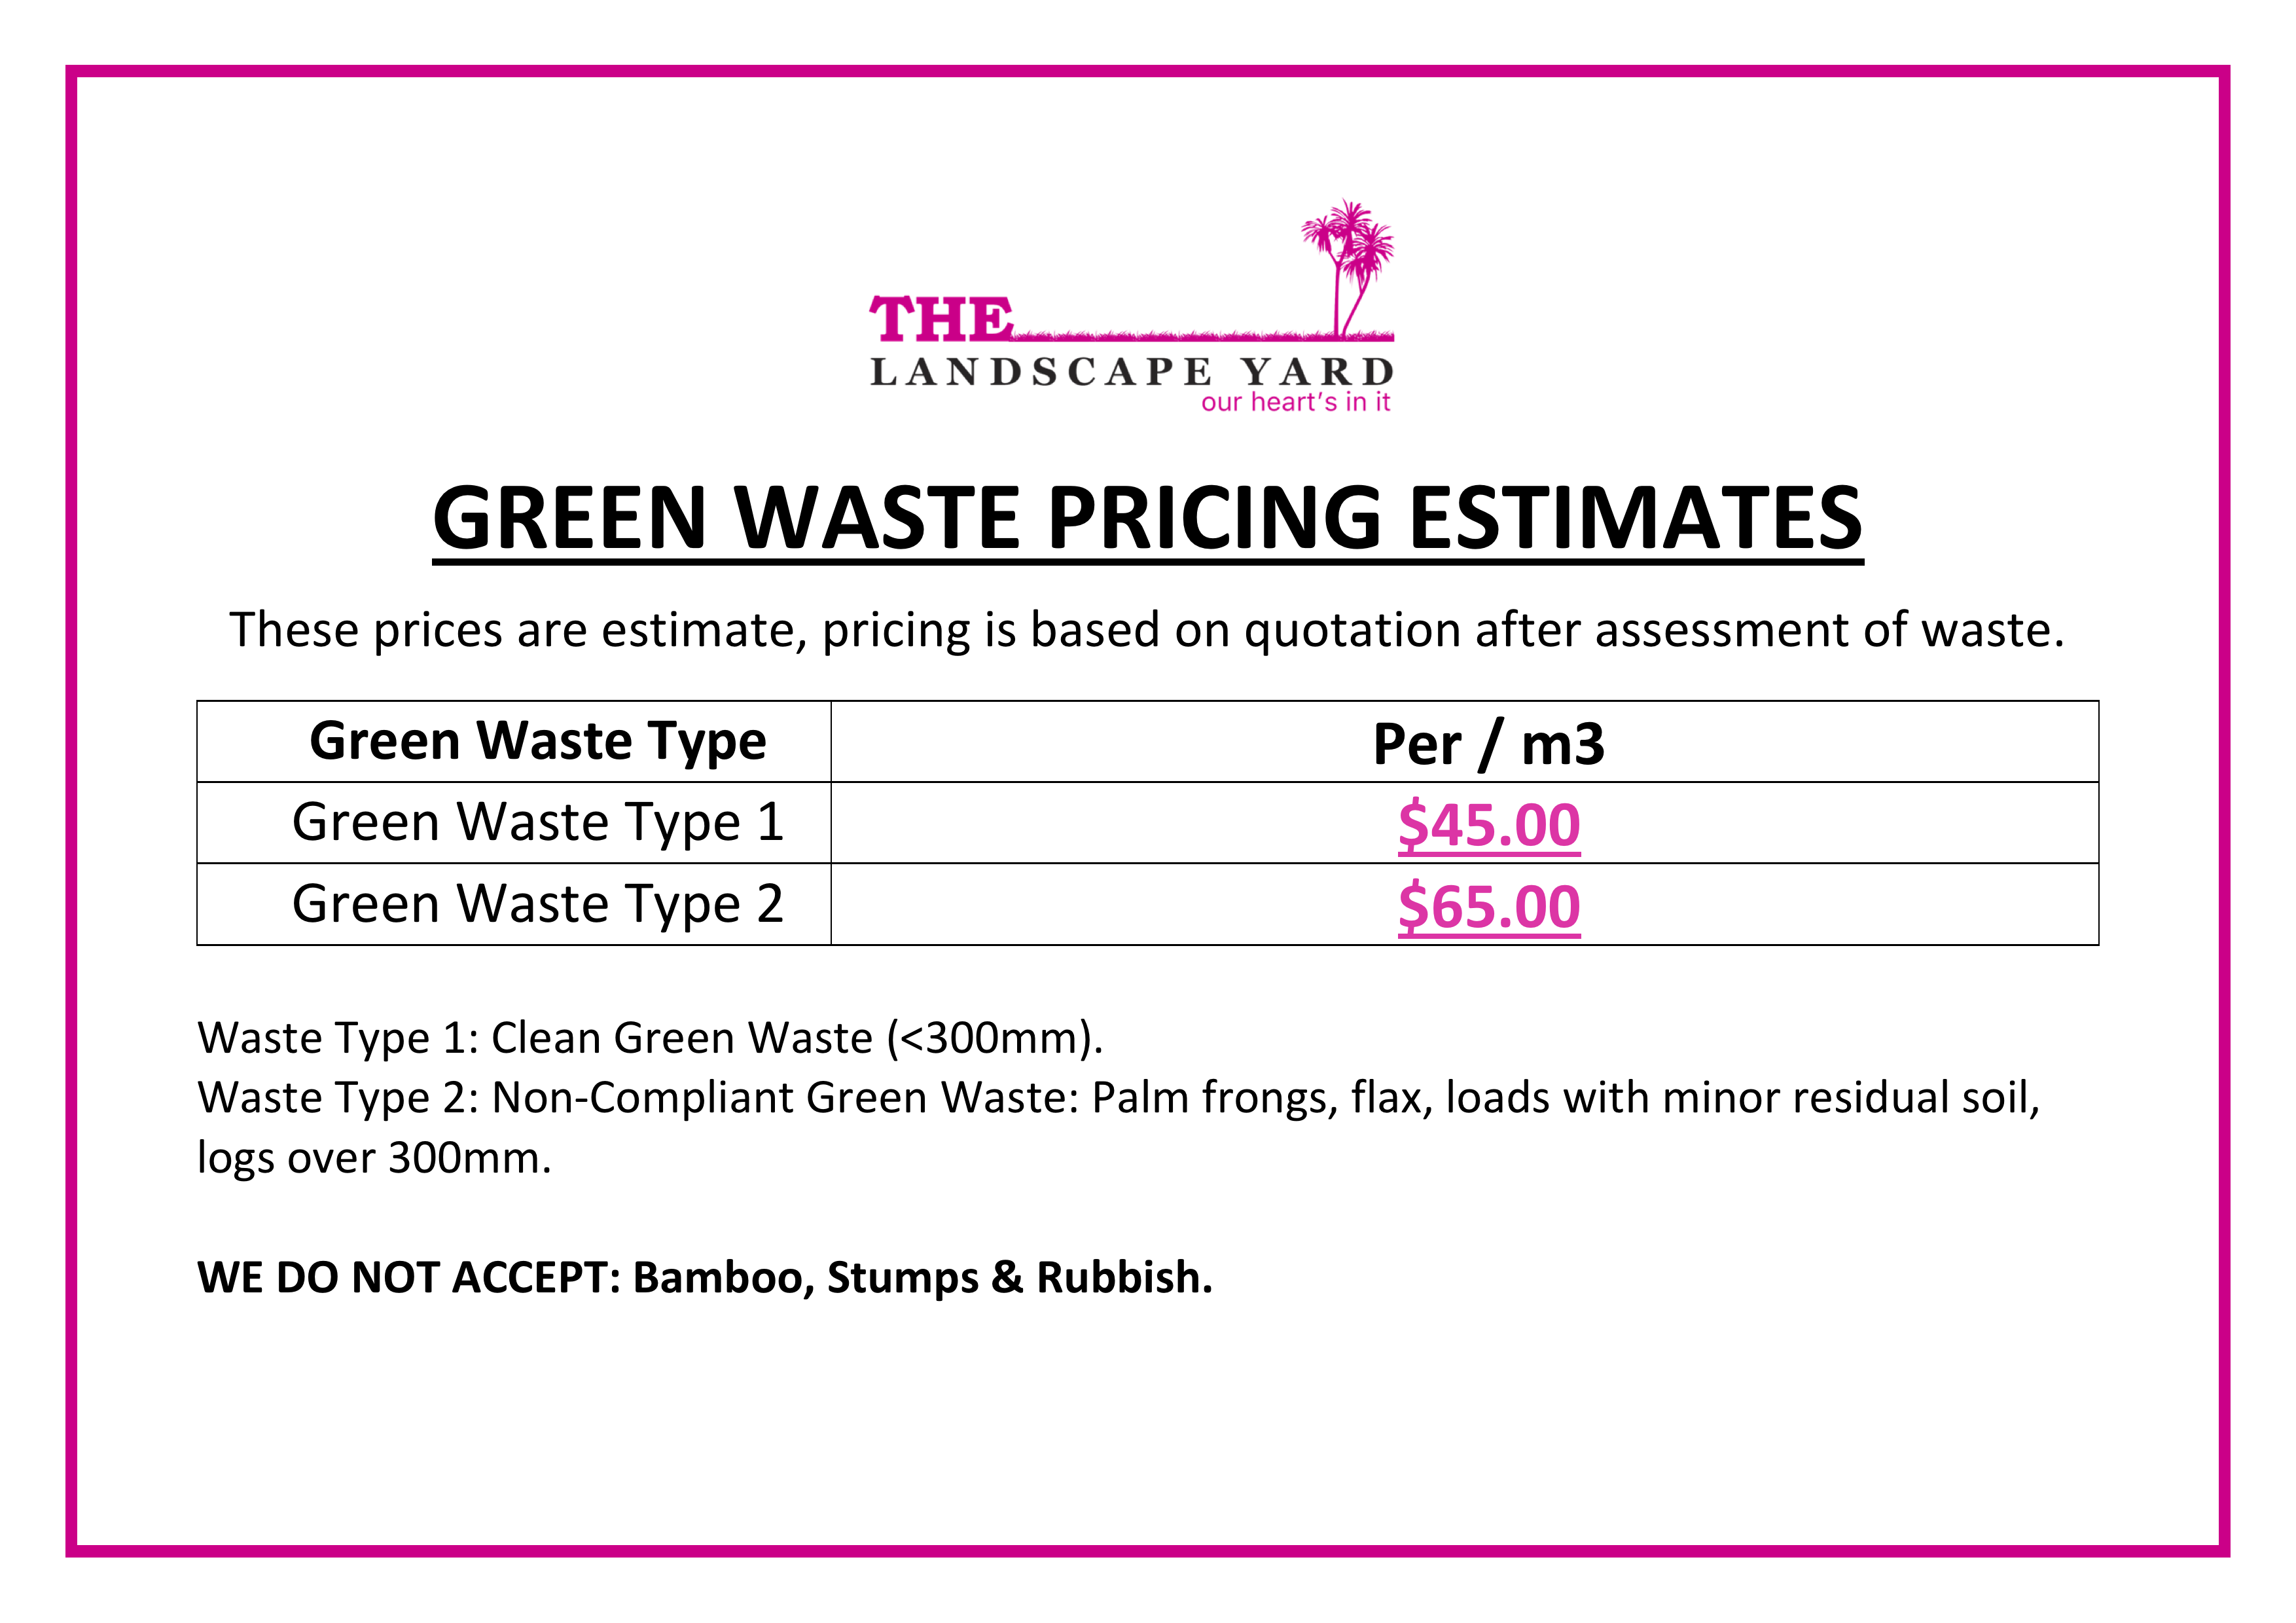 Green Waste Pricing